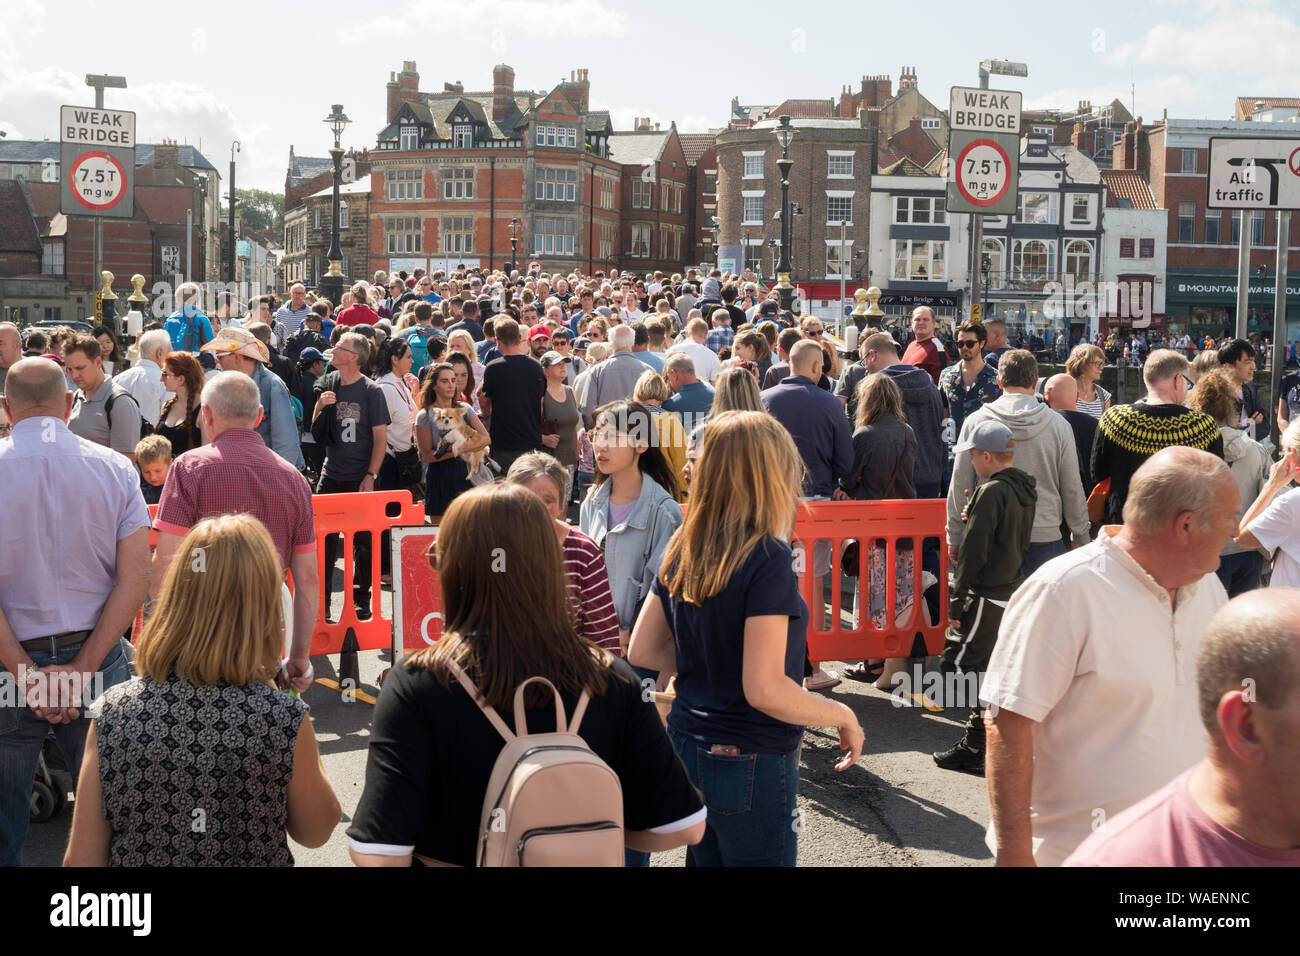 Crowds of people crossing the swing bridge during Whitby folk festival, North Yorkshire, England, UK Stock Photo